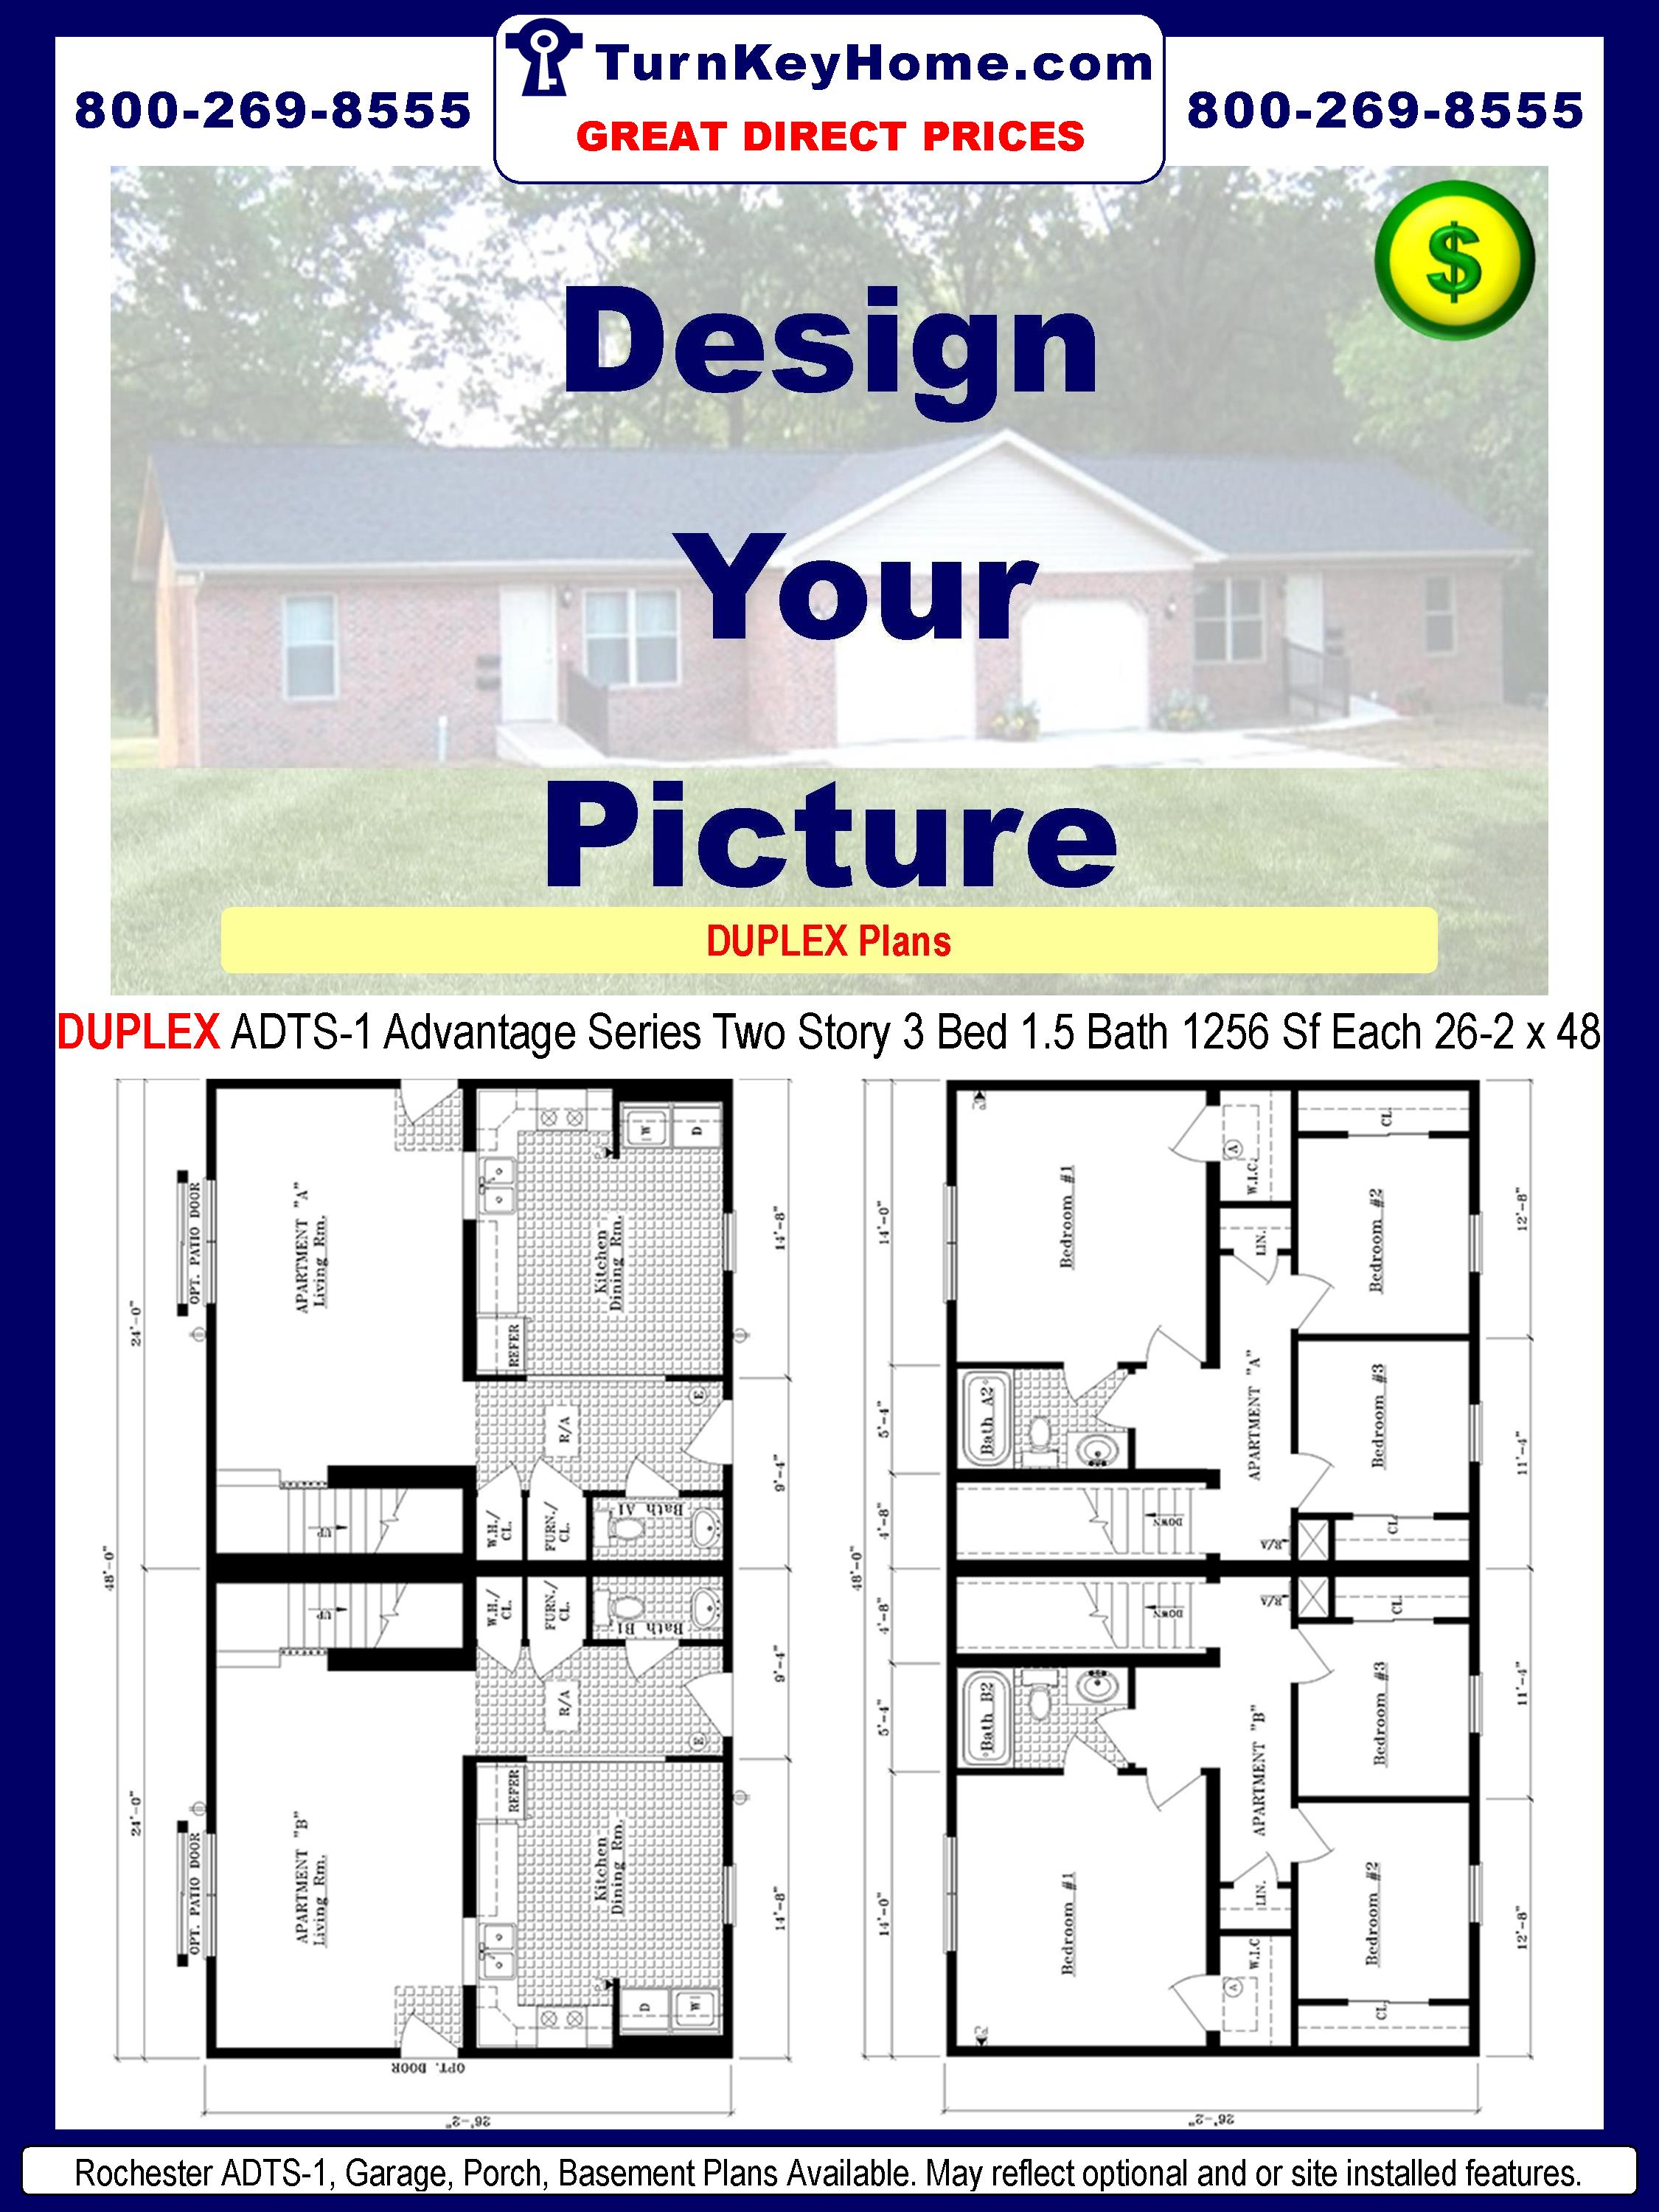 2 story mobile homes floor plans for 3 bedroom duplex plans